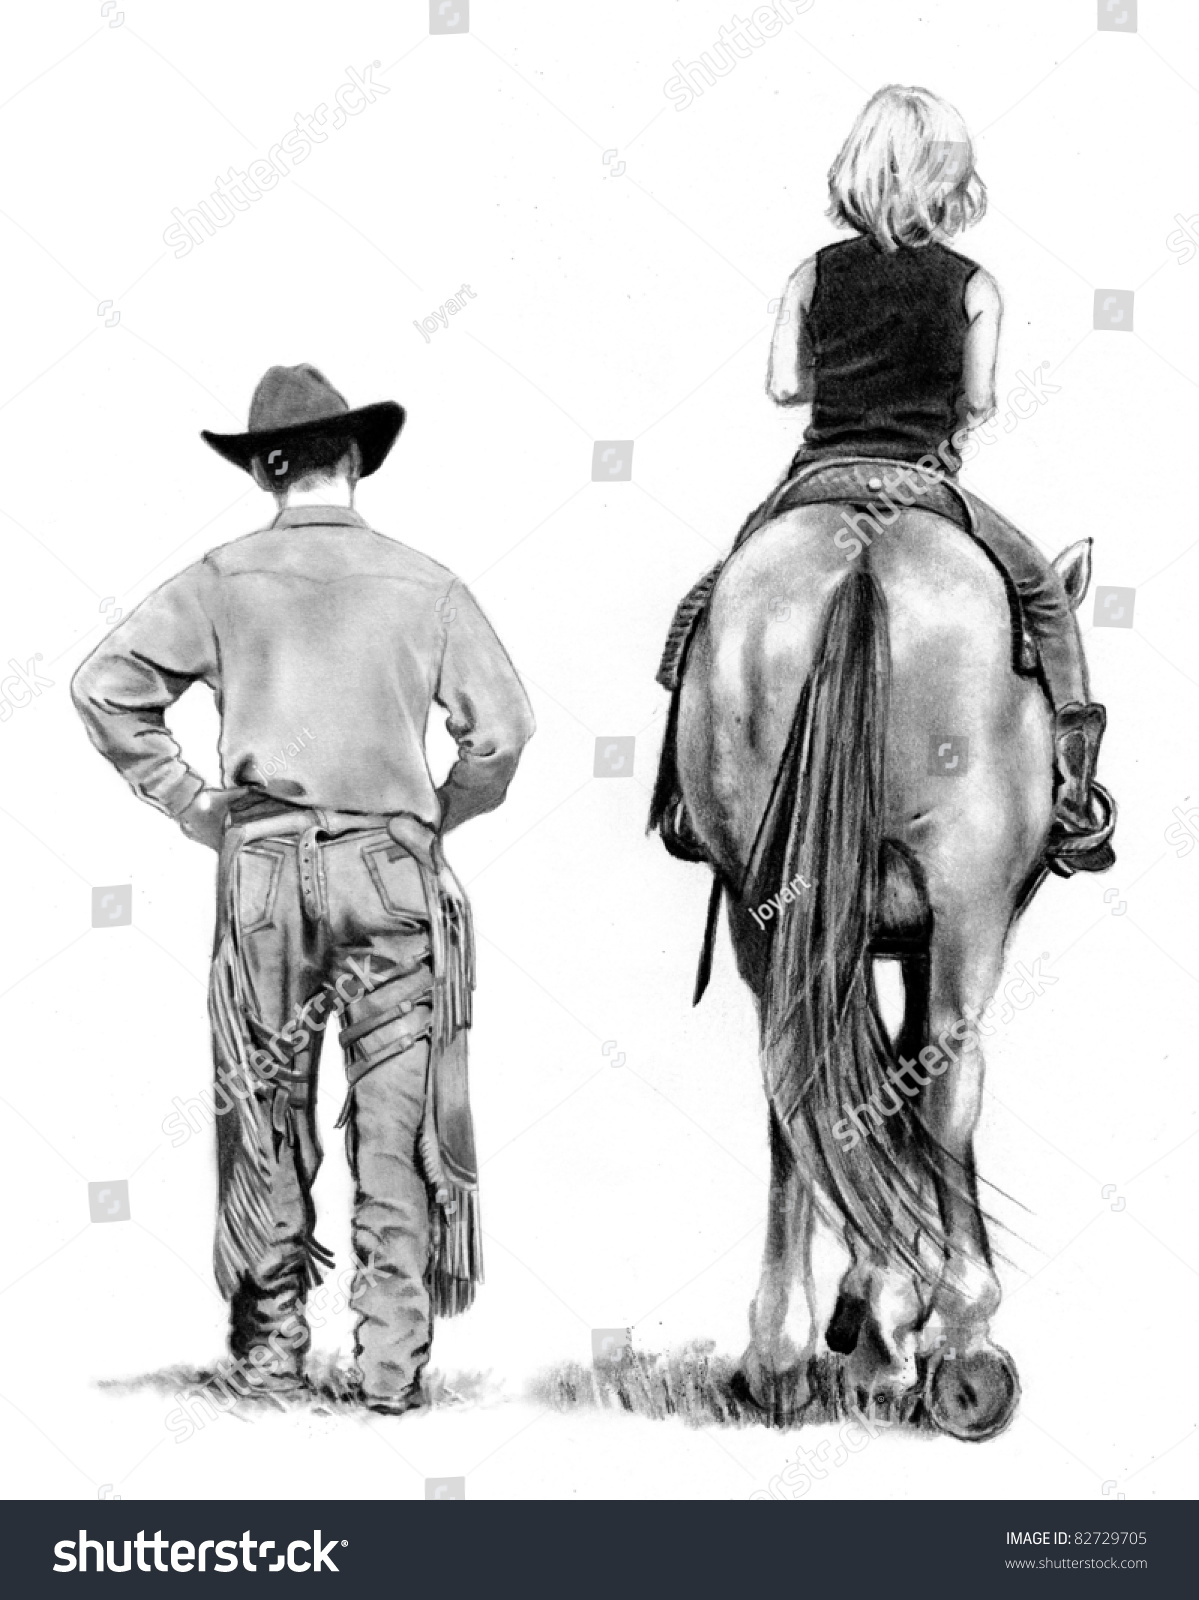 Pencil Drawing: Cowboy And Young Horse Rider Stock Photo 82729705 : Shutterstock